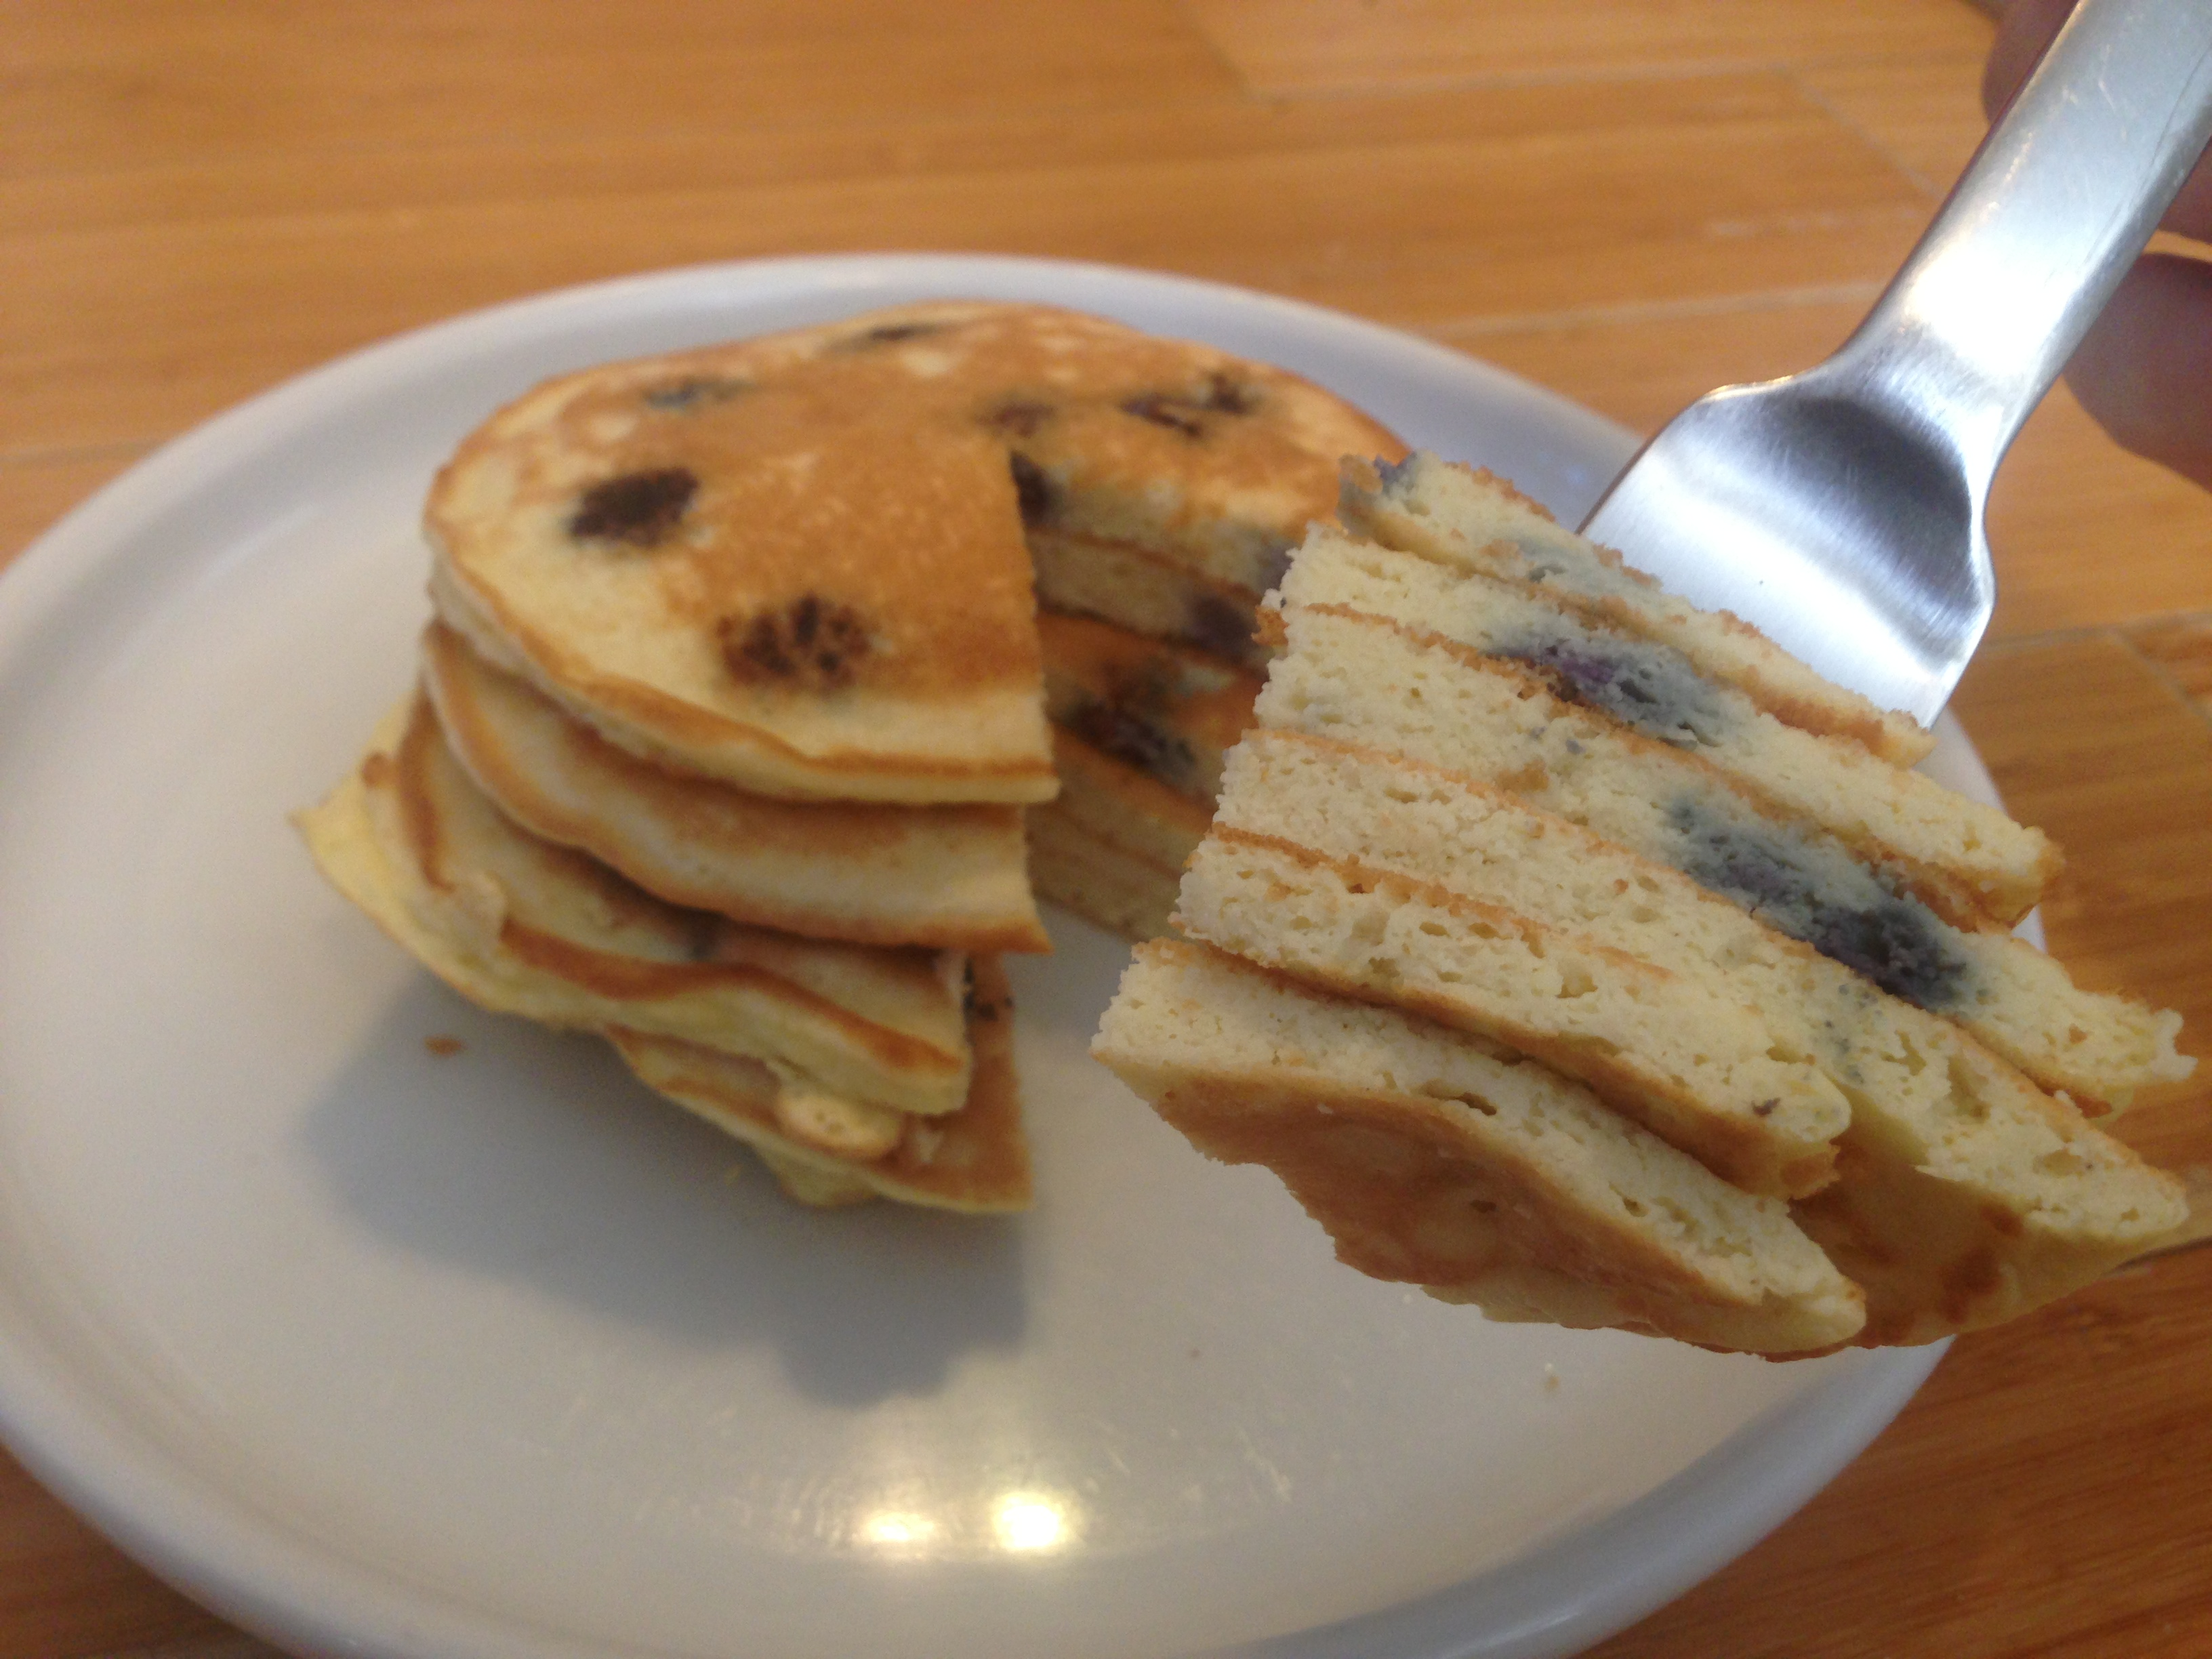 Pancake guess whos cooking blueberry coconut flour pancakes low carb gluten free dairy free ccuart Gallery